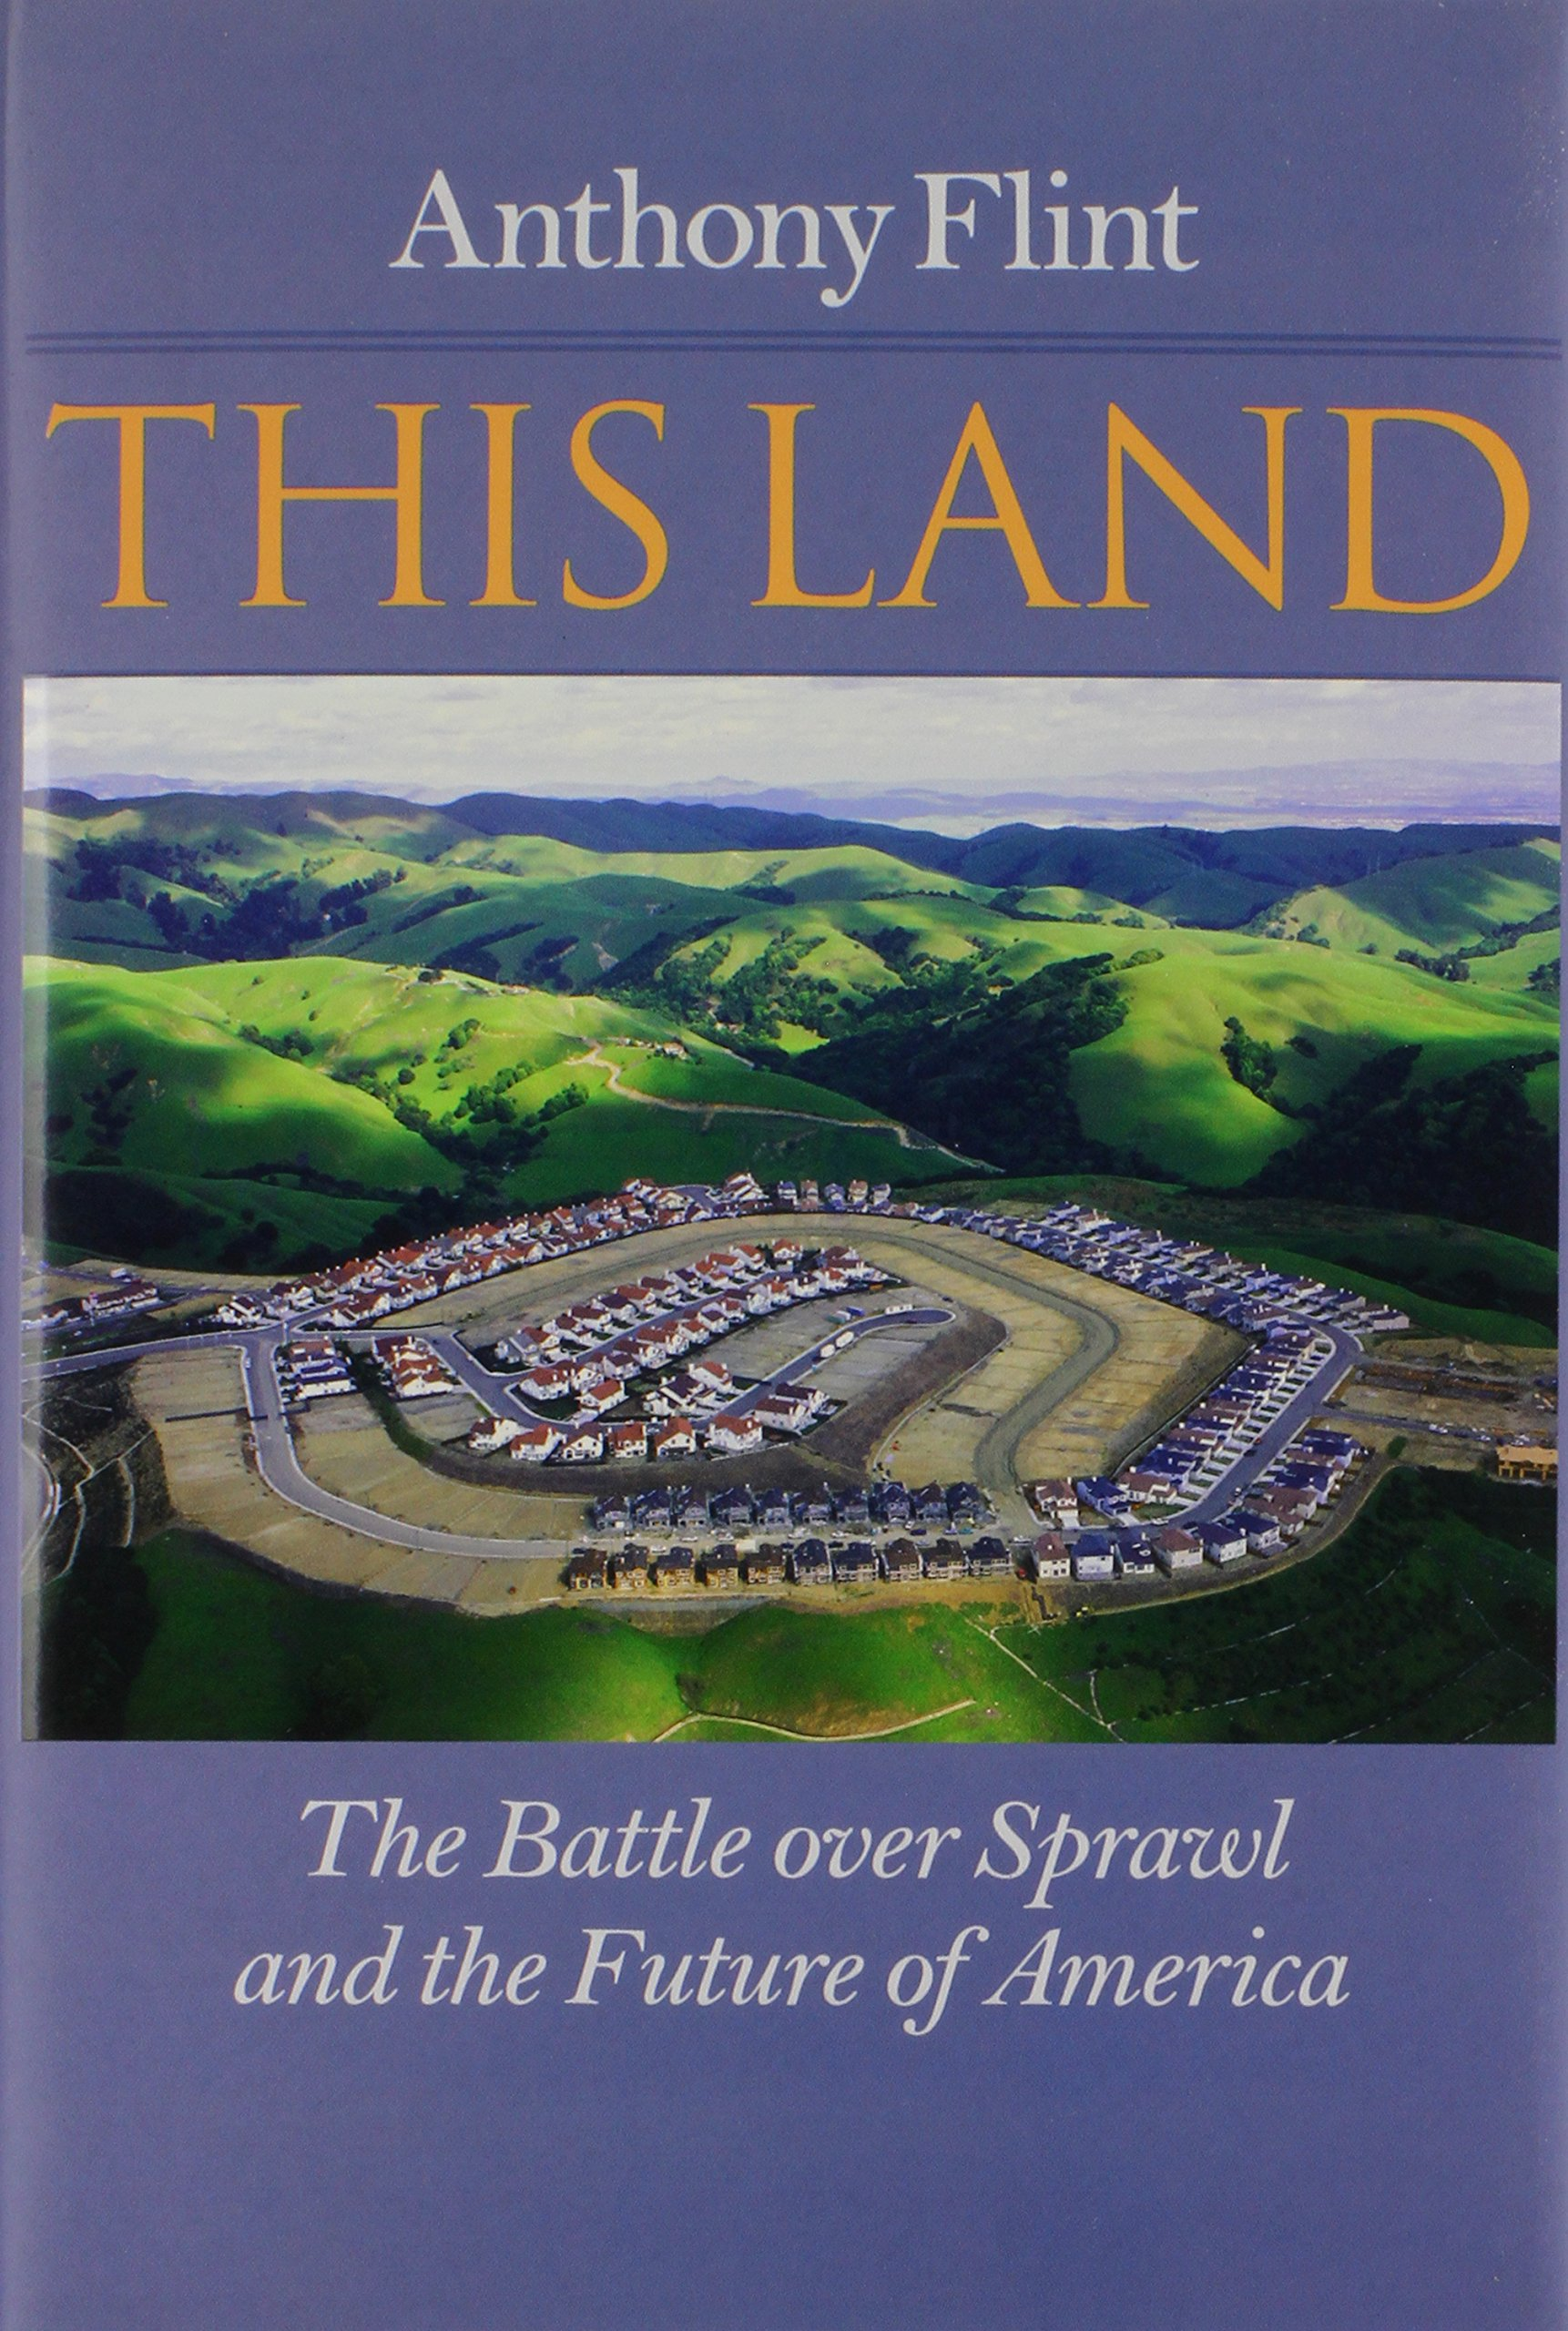 This Land: The Battle over Sprawl and the Future of America PDF